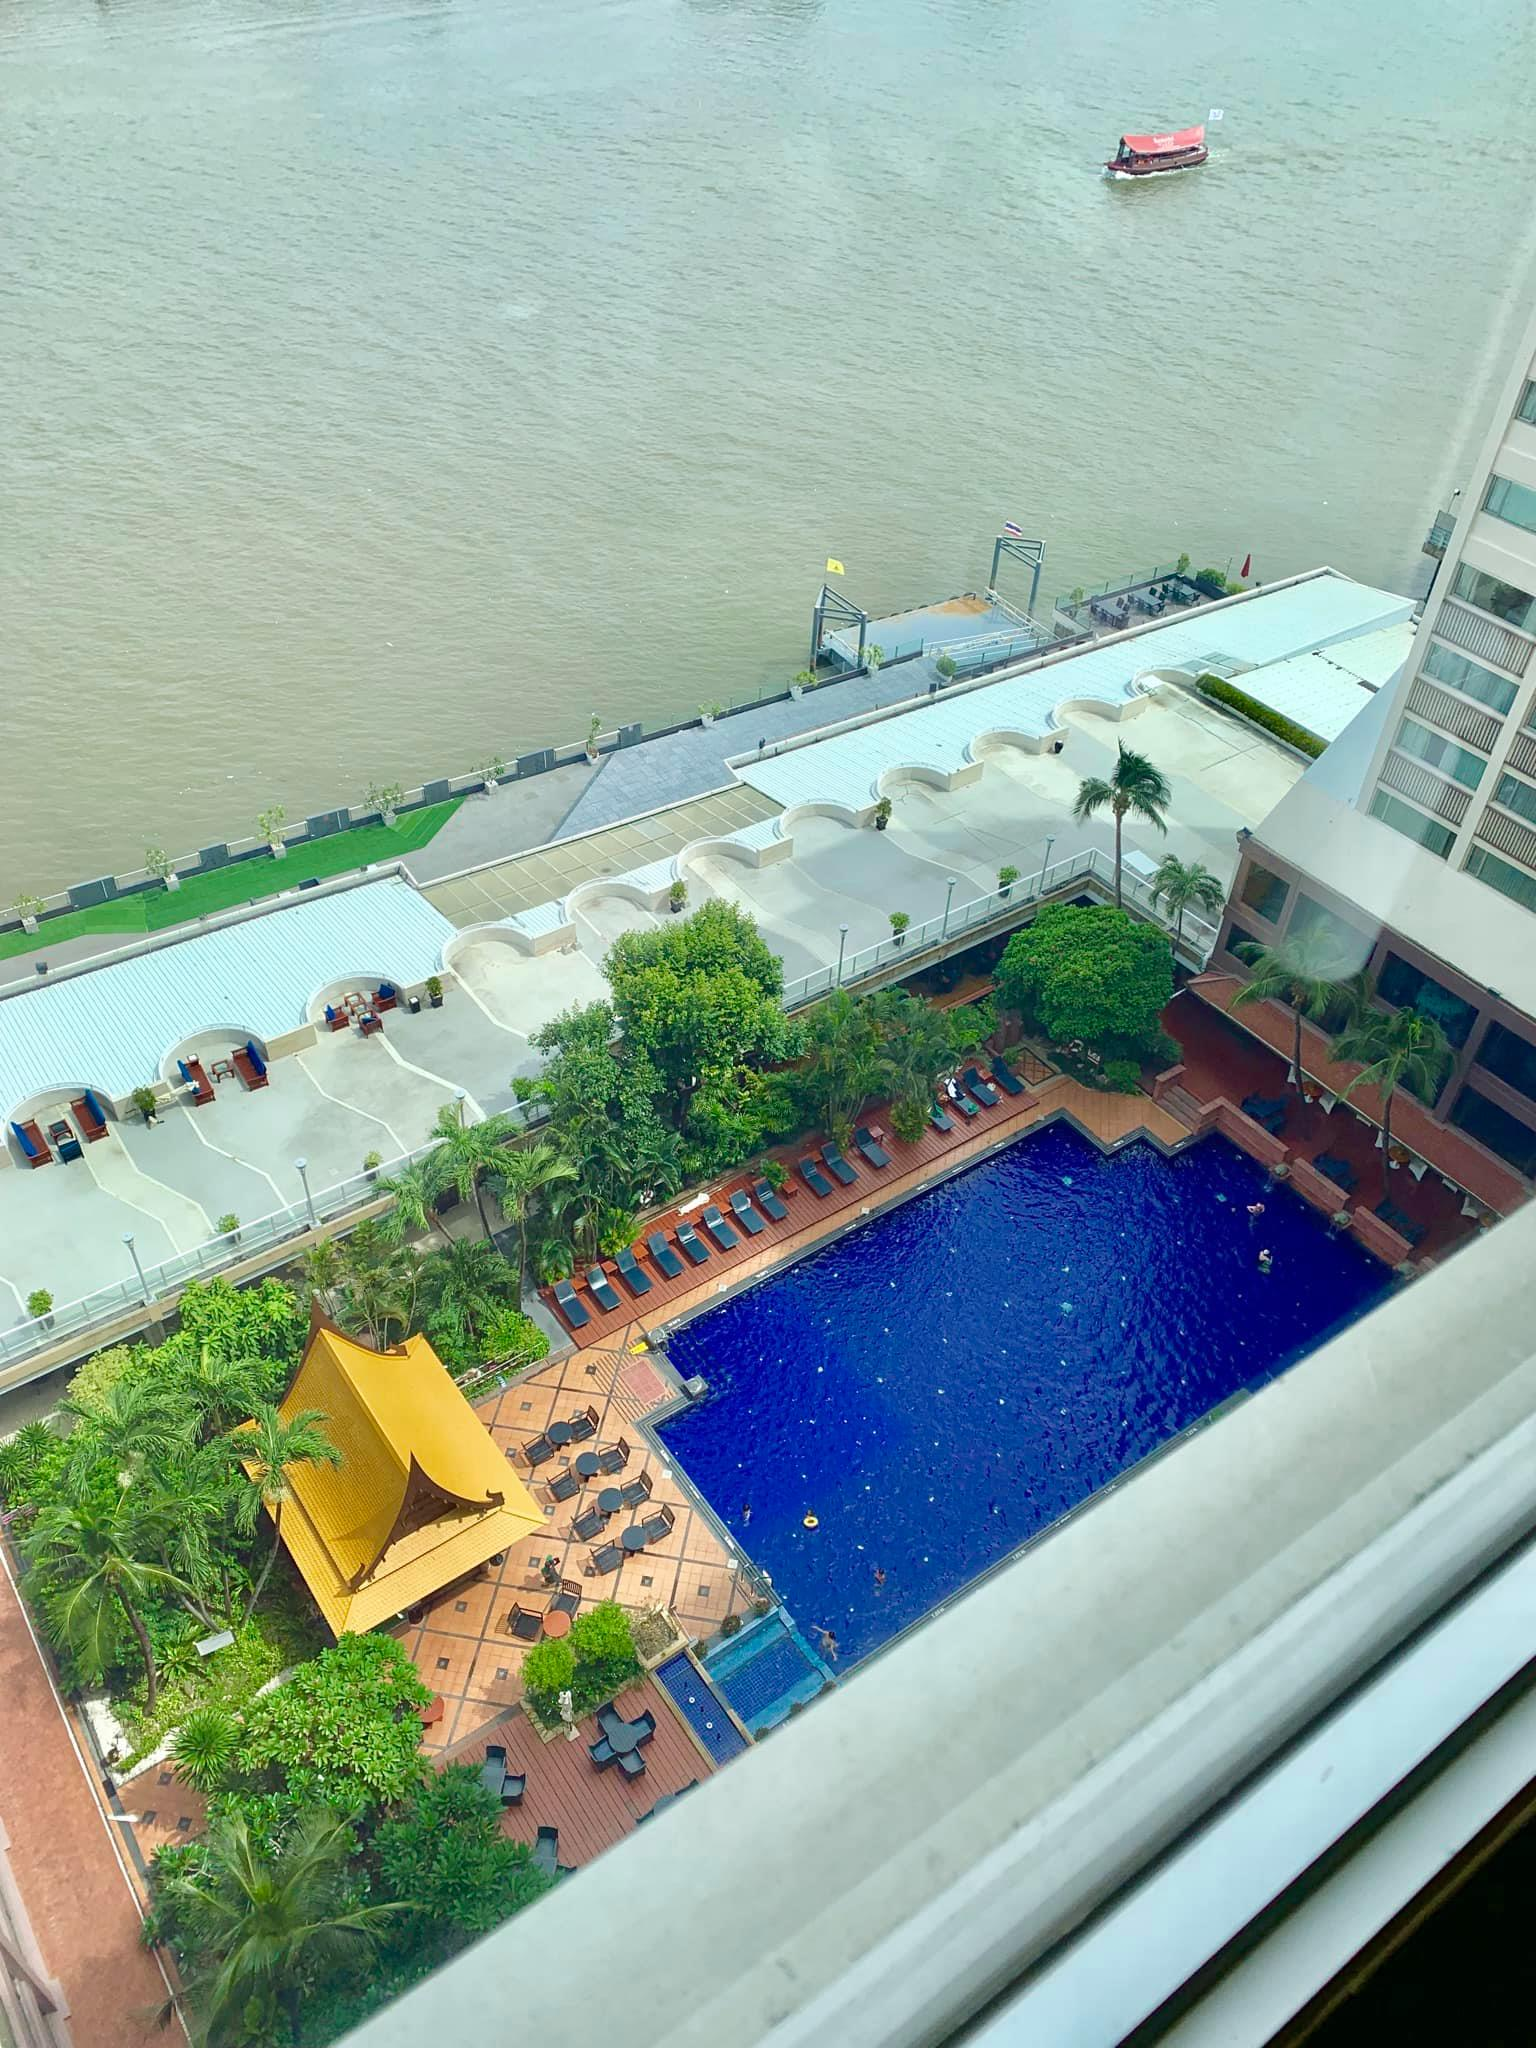 Our Luxurious Staycation At Ramada Plaza In Bangkok And Our Tour With Tinggly Experiences21